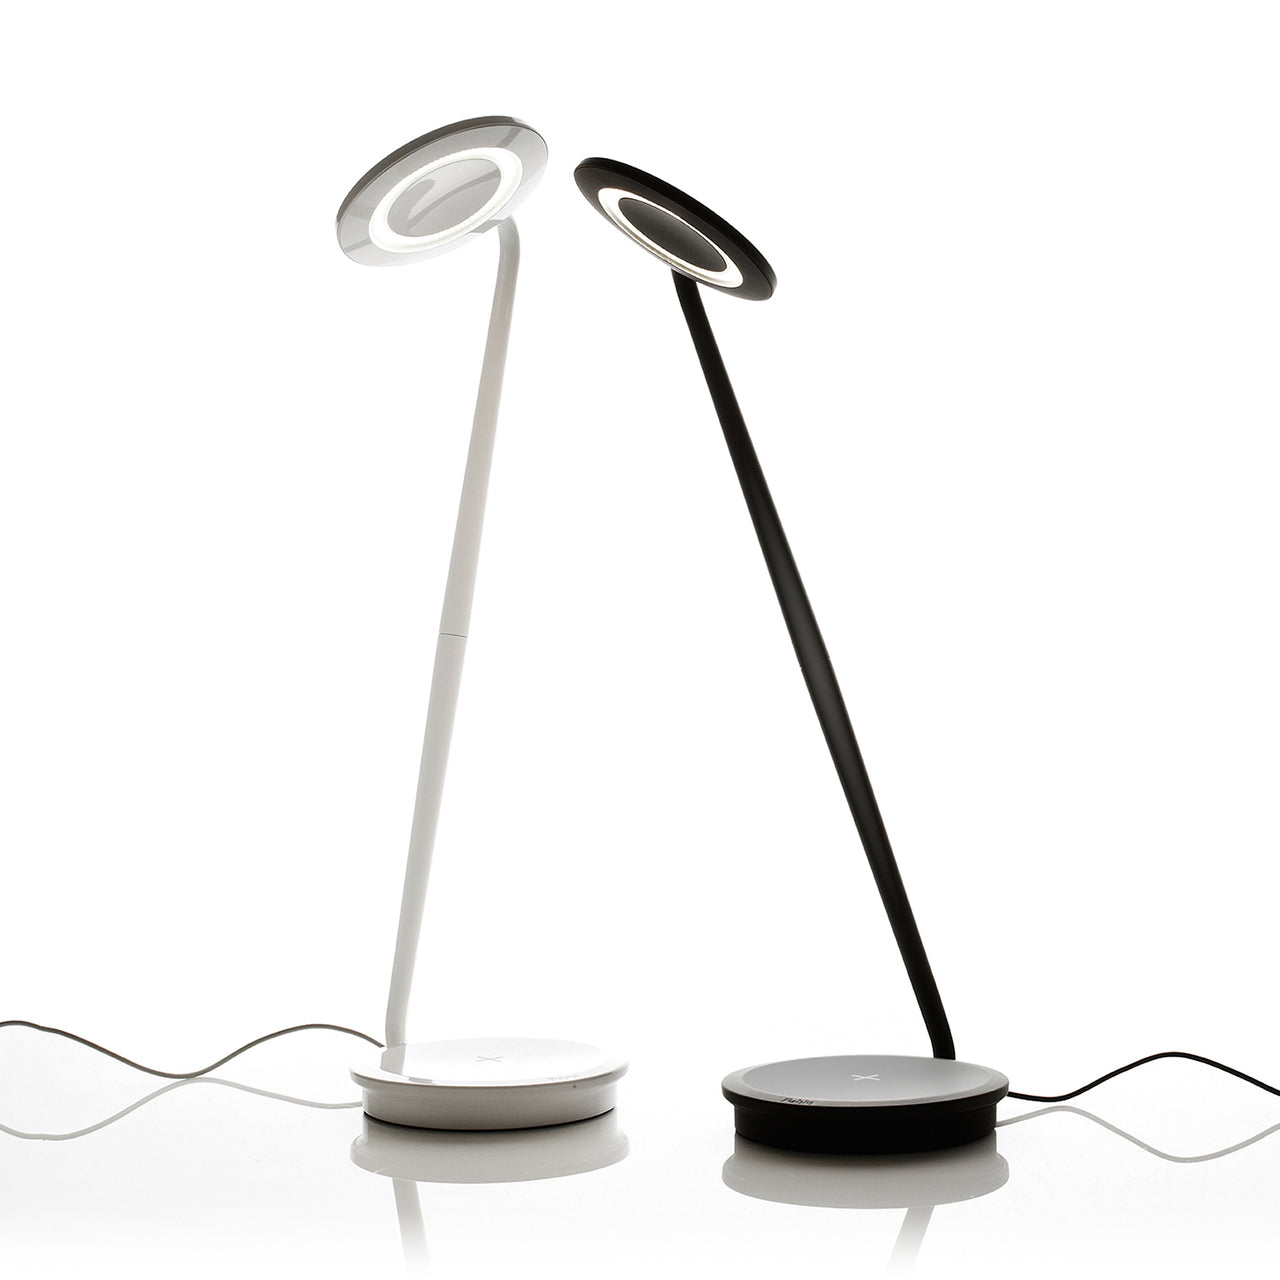 Pixo Plus Task Light with Wireless Charging